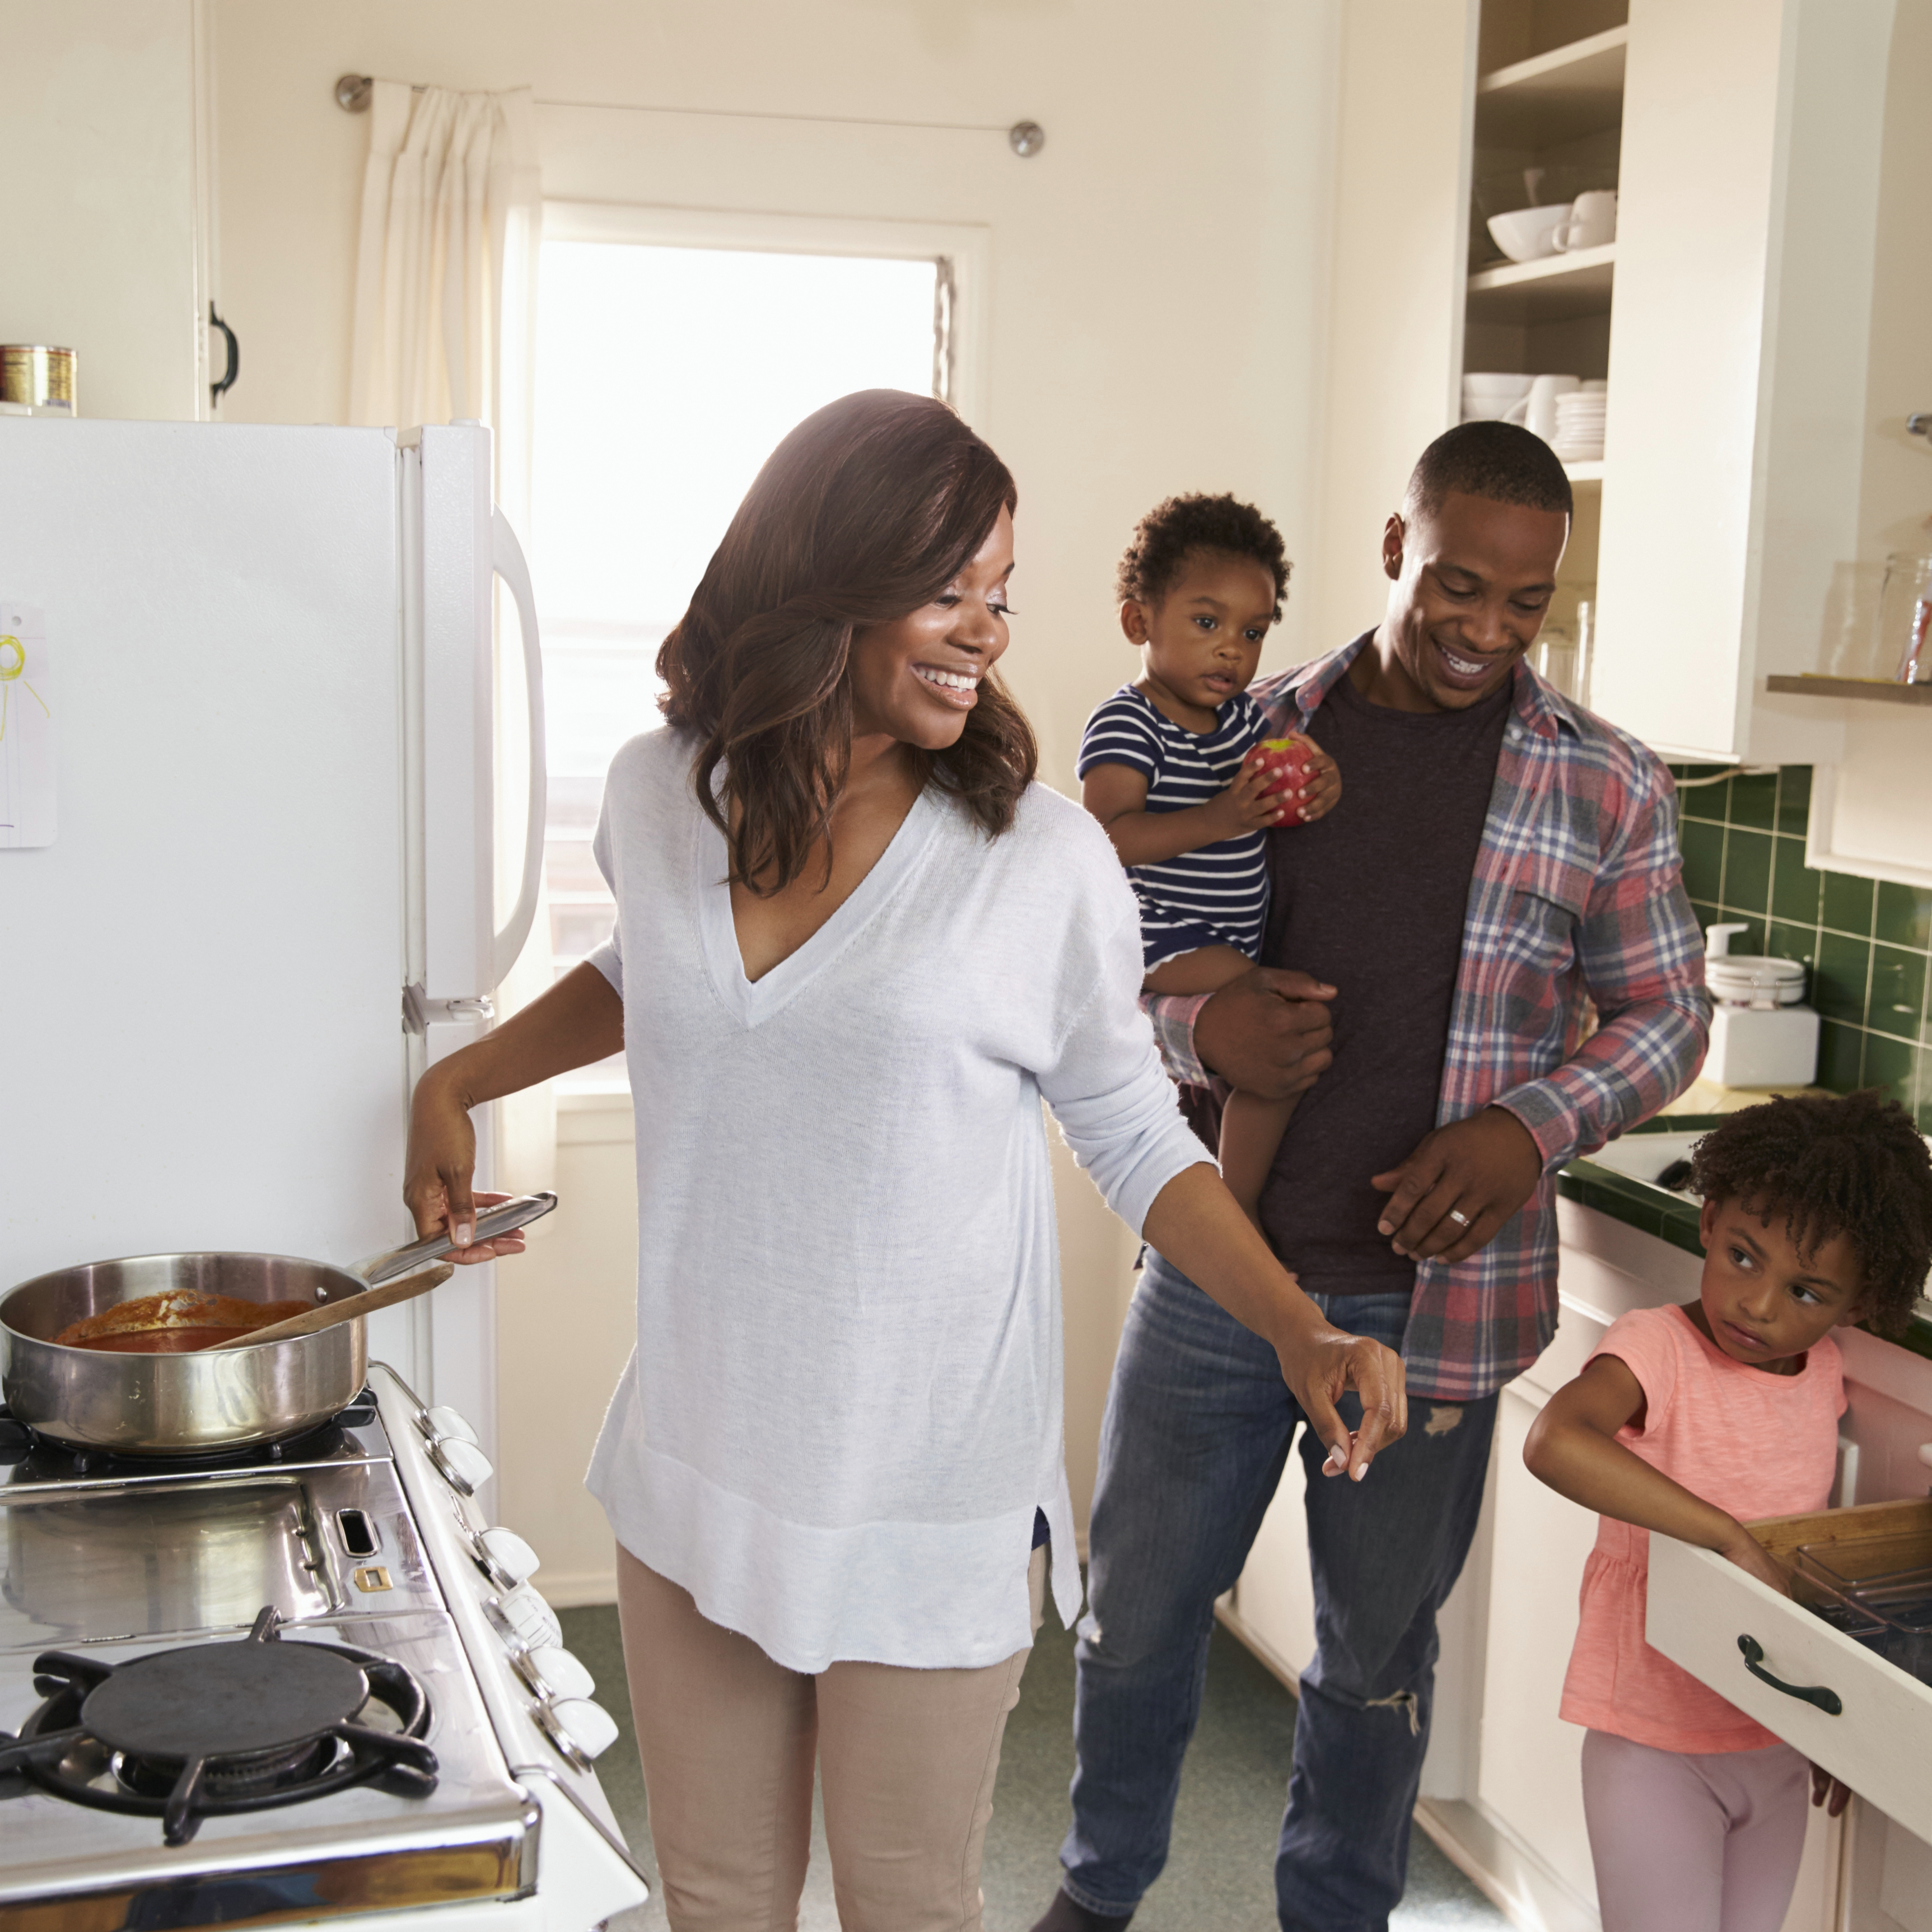 a family in the kitchen getting ready to cook and eat dinner together